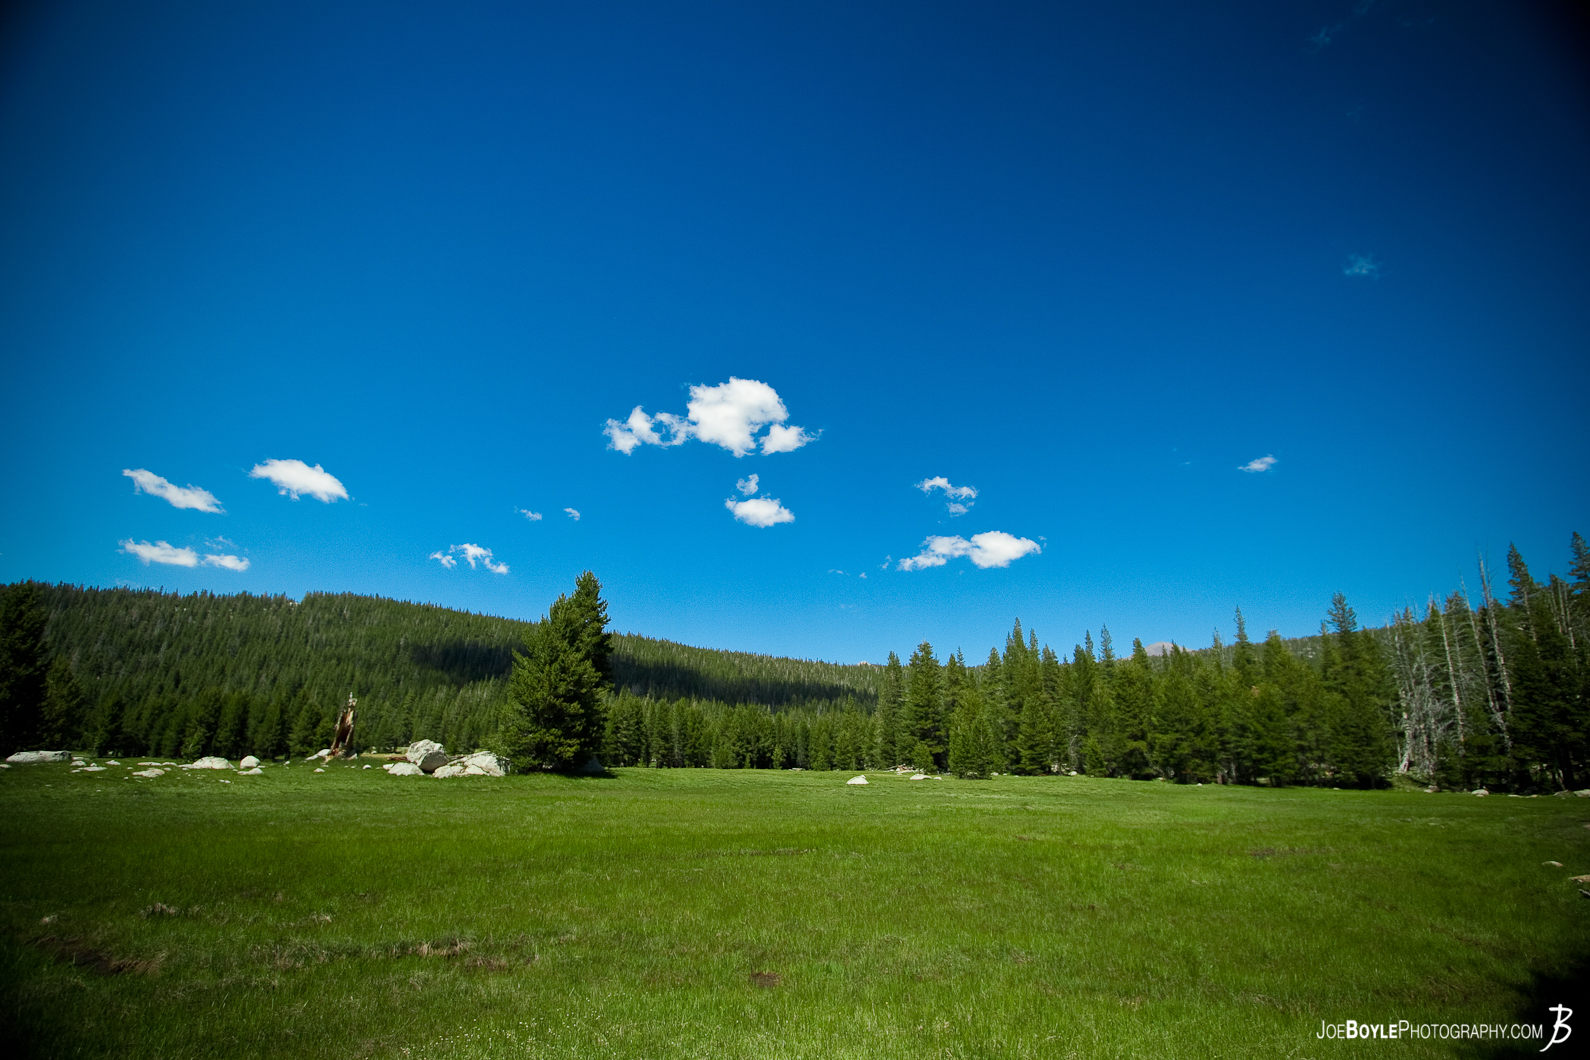 This field was near Lembert Dome along the John Muir Trail in Yosemite National Park.